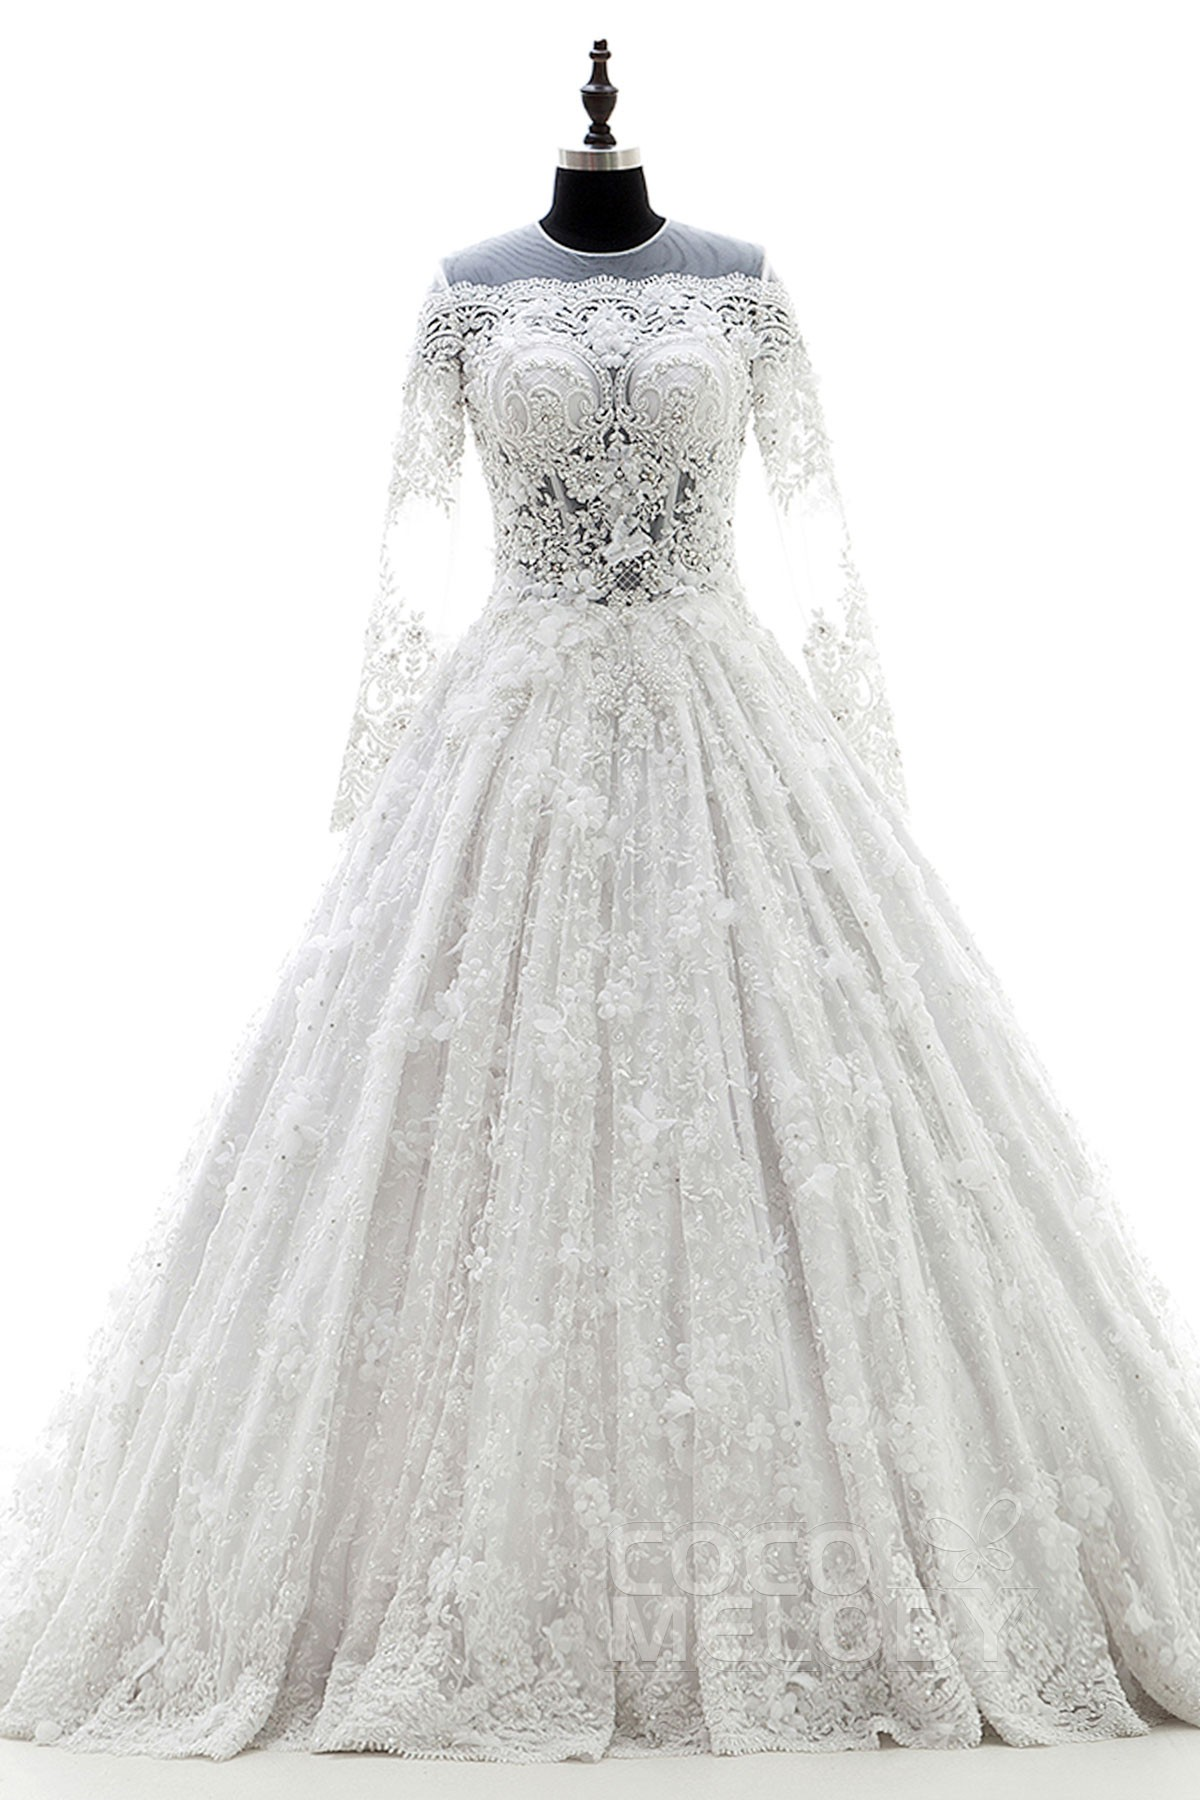 Unique A-Line Illusion Natural Chapel Train Lace White Long Sleeve Zipper With Buttons Wedding Dress Beading Flower LD3898